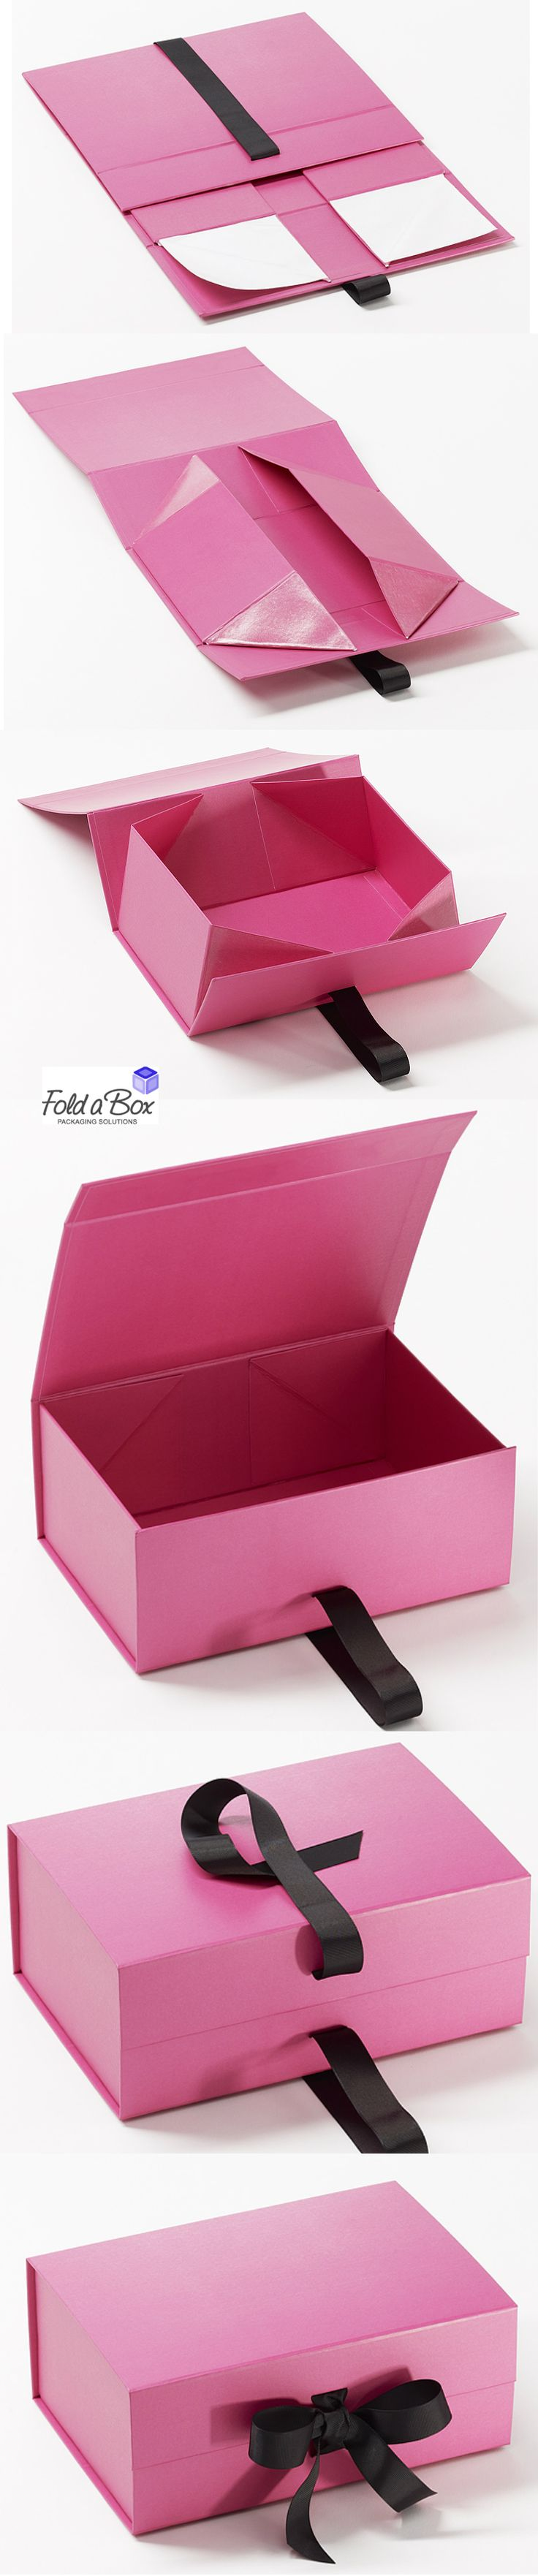 Our high quality gift boxes fold flat for minimal storage. The perfect gift wrapping solution. www.foldaboxusa.com